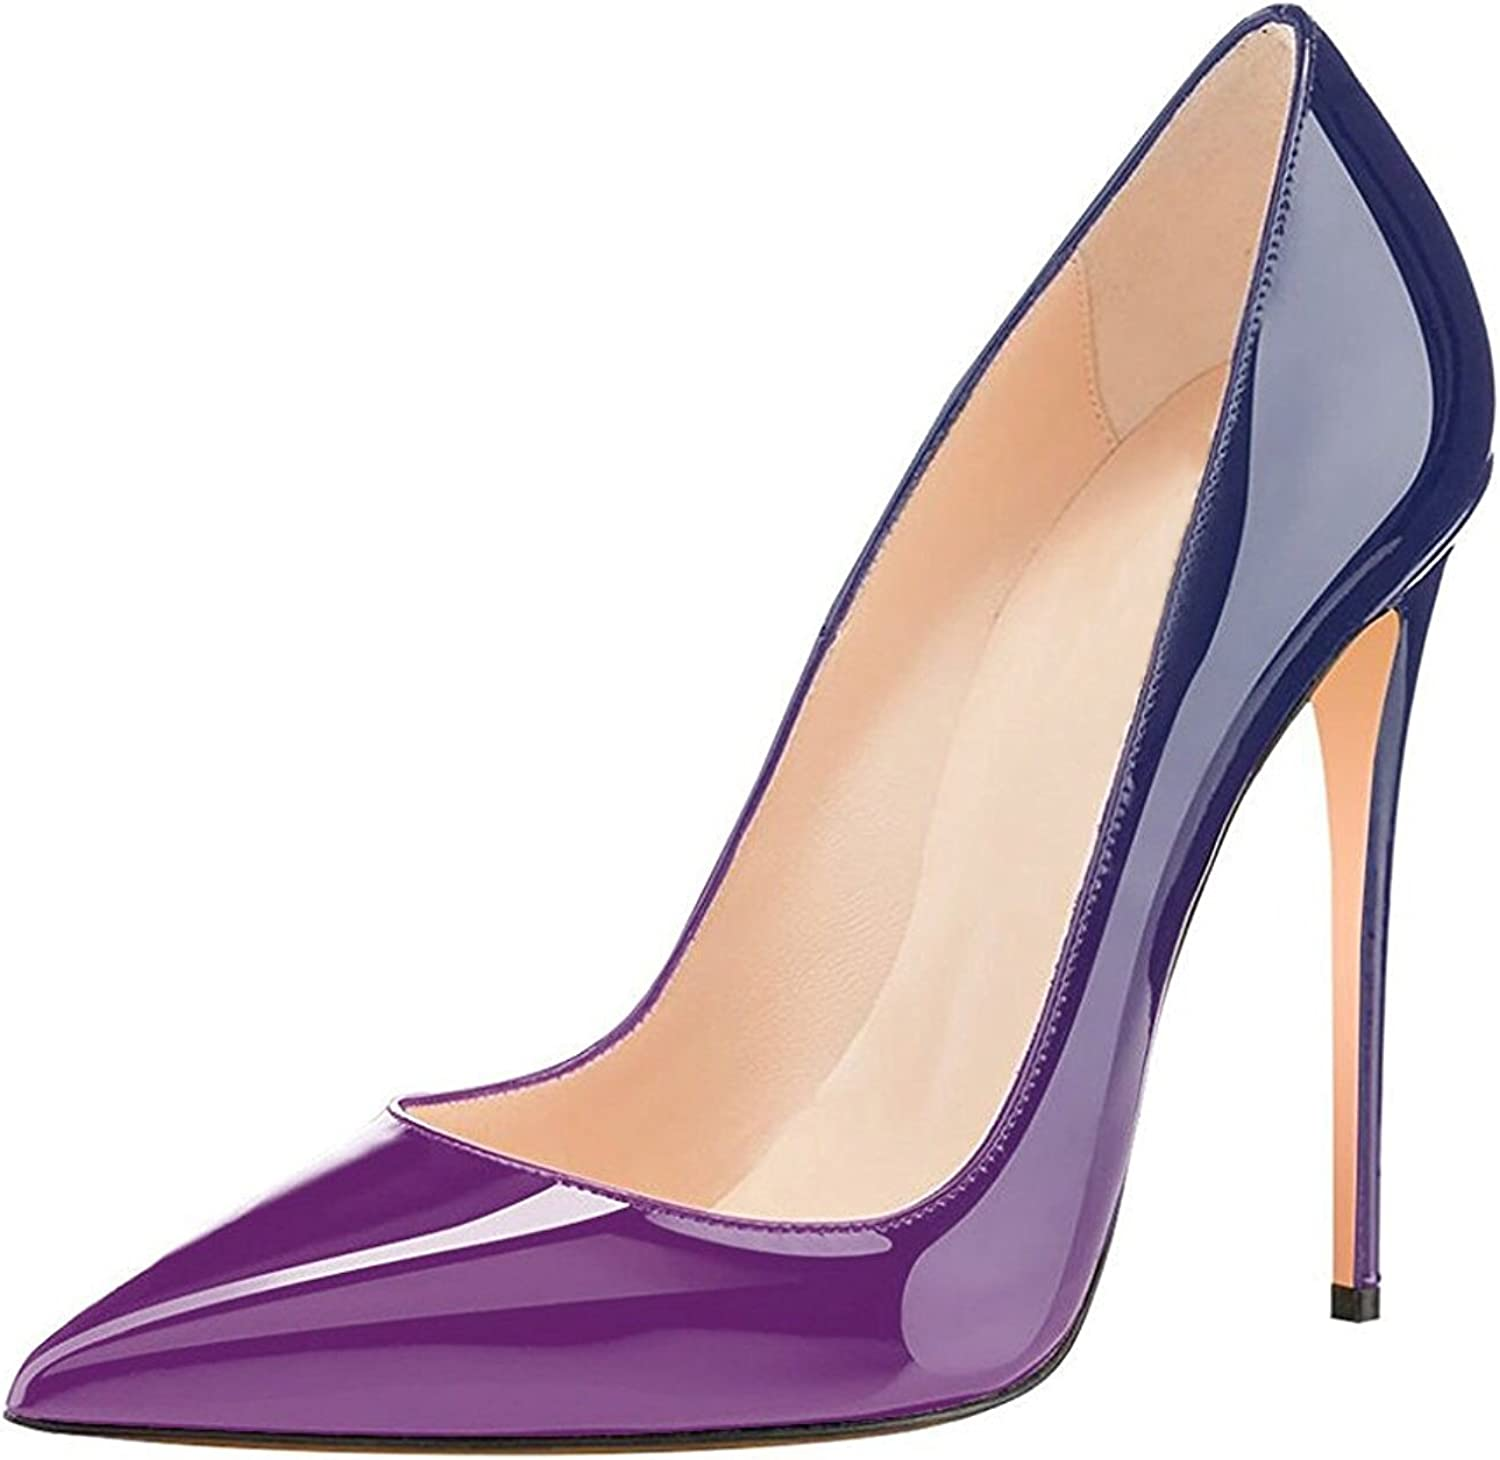 Sammitop Women's Pointed Toe Evening Pumps Stiletto High Heels Slip-on Sexy Dress shoes